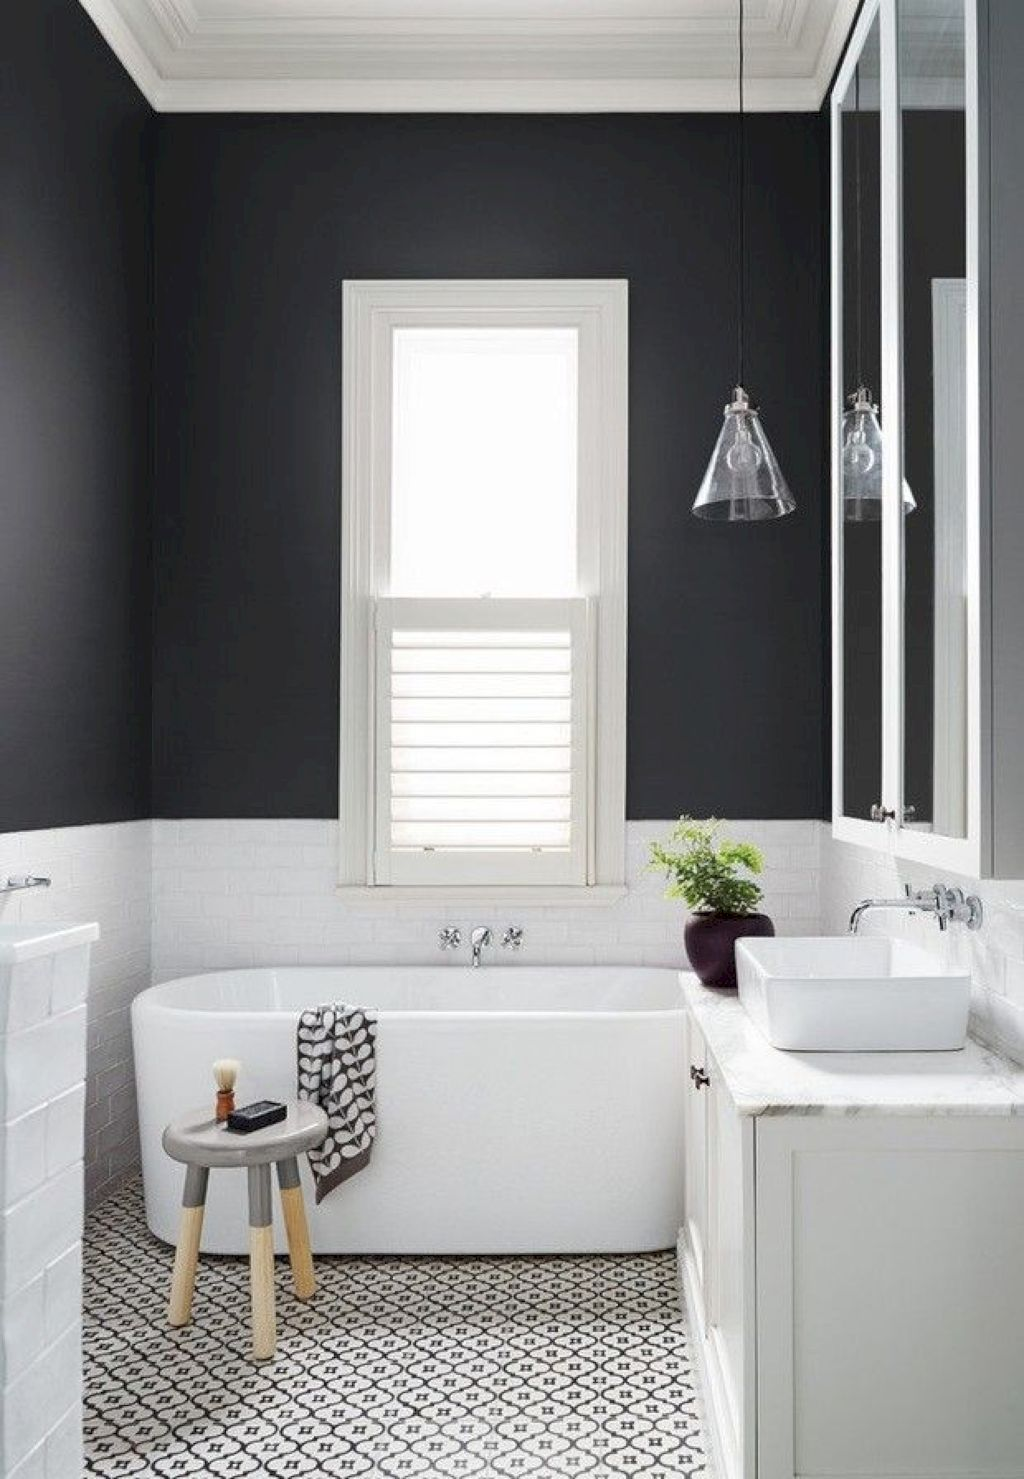 Cool 55 Inspiring Minimalist Bathroom Decor and Design Ideas https ...